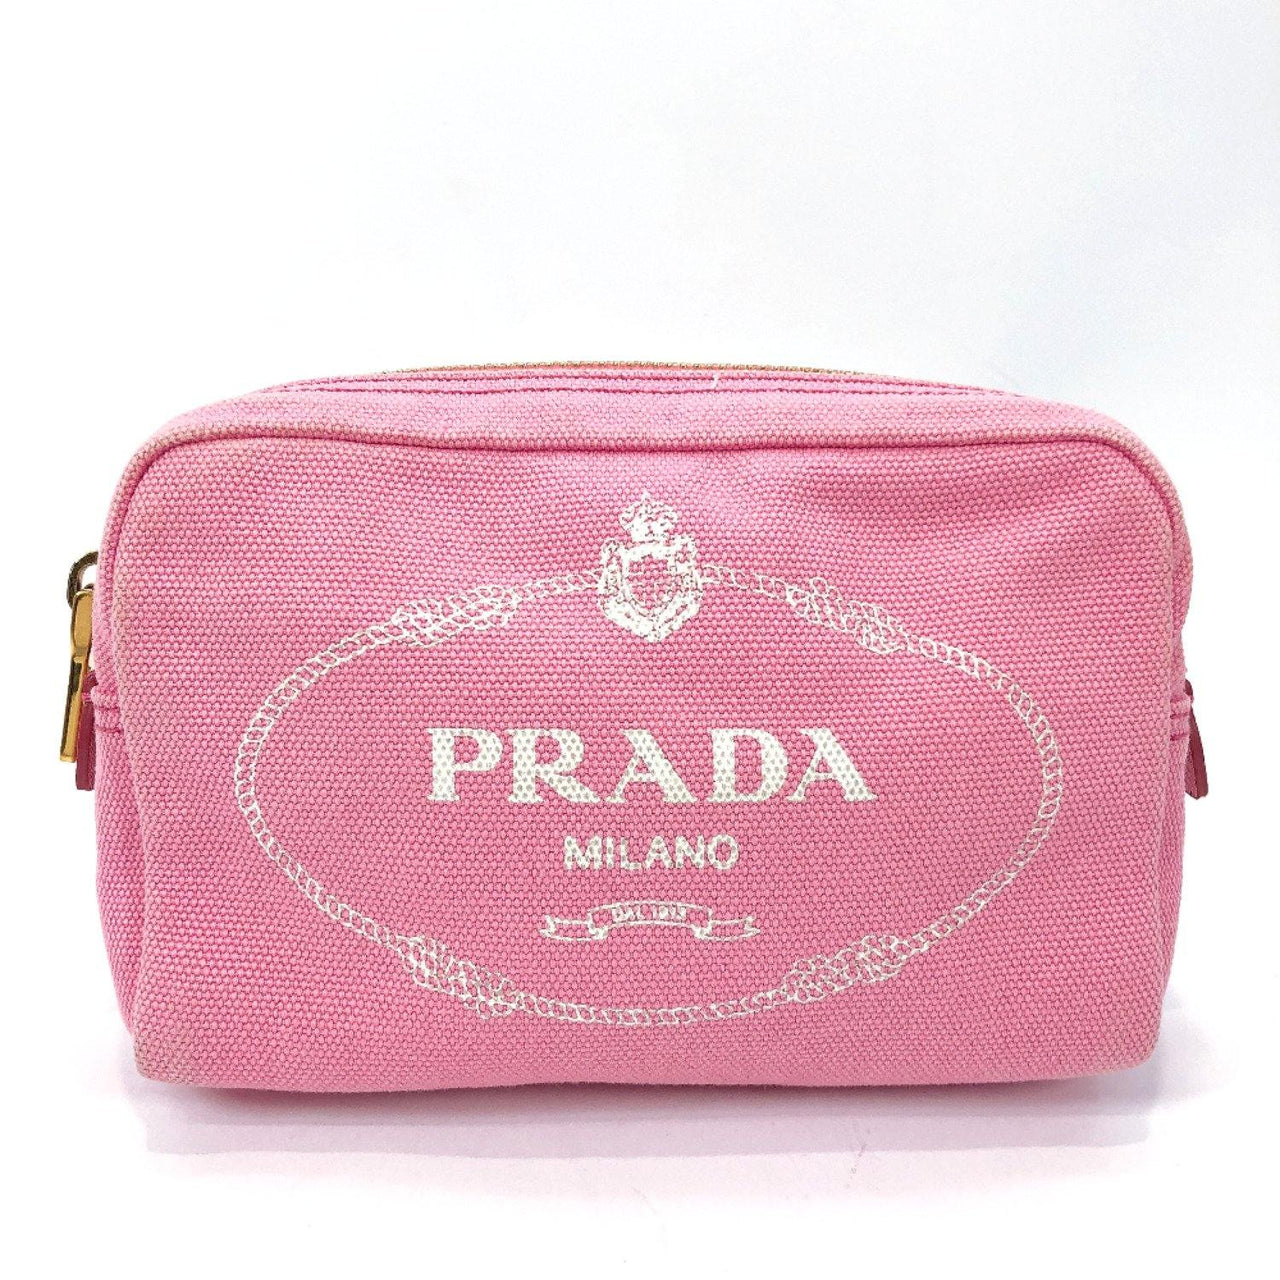 PRADA Pouch canvas pink Women Used - JP-BRANDS.com